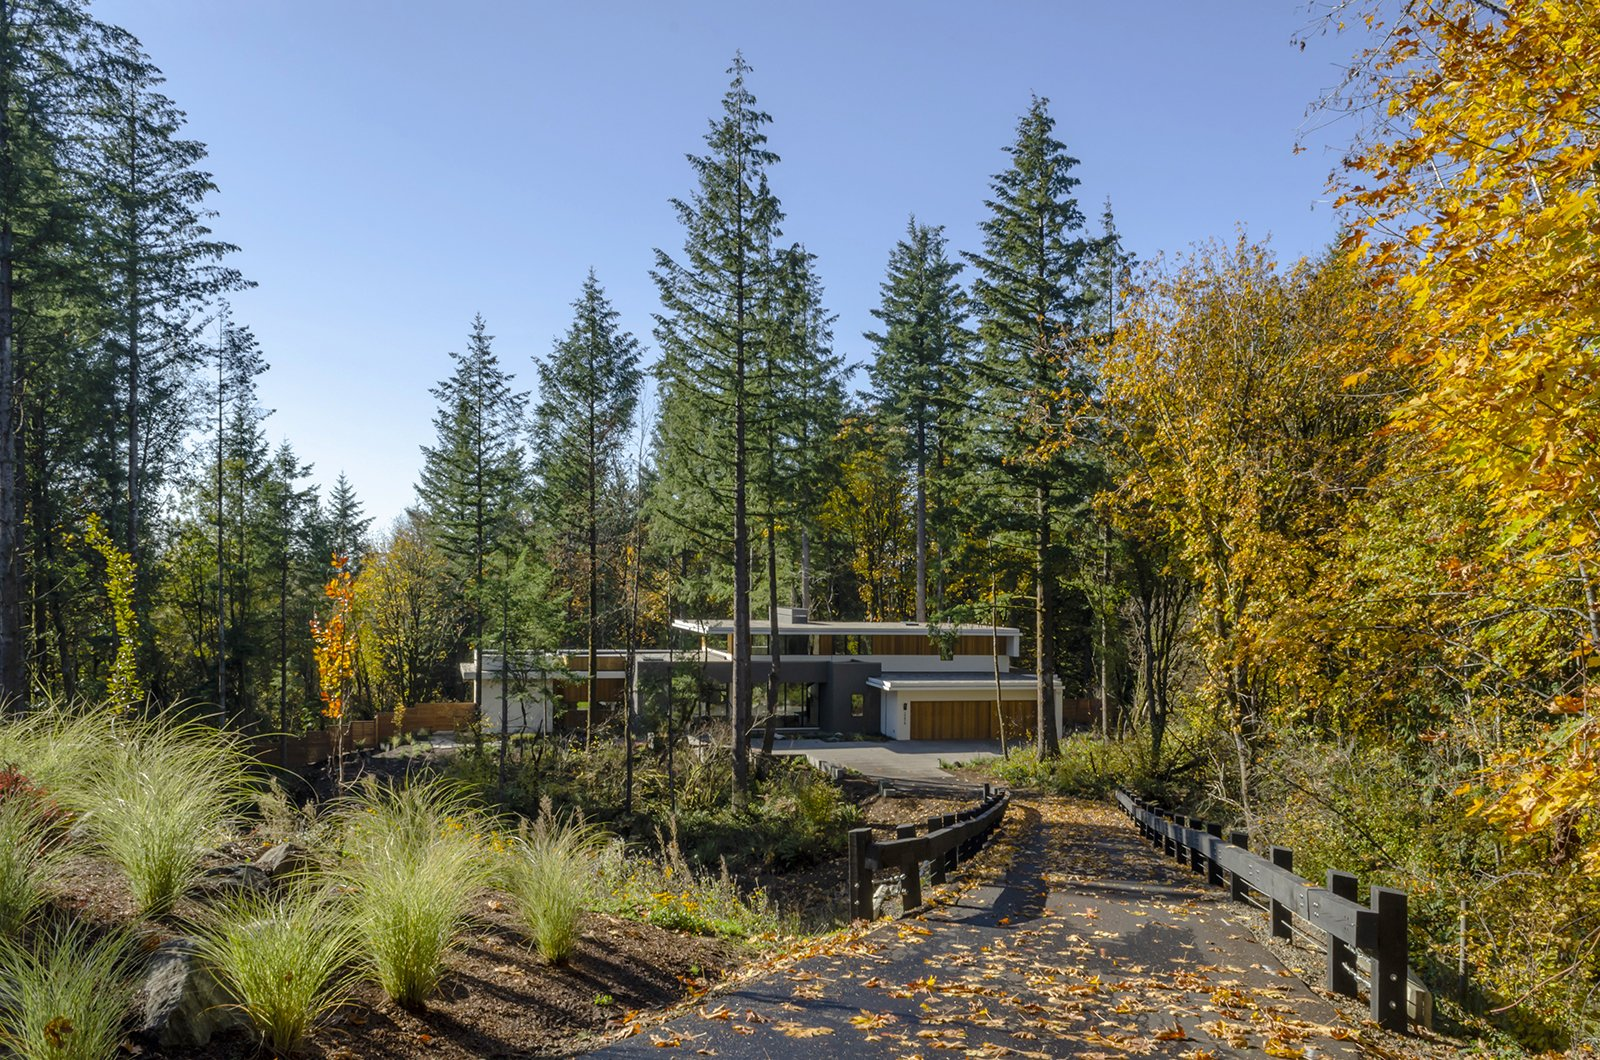 Exterior, Stucco Siding Material, Wood Siding Material, Flat RoofLine, and House Building Type Access to the site is provided by shared private road down to a small clearing between the protected trees and habitat.  Wildwood by Giulietti / Schouten AIA Architects